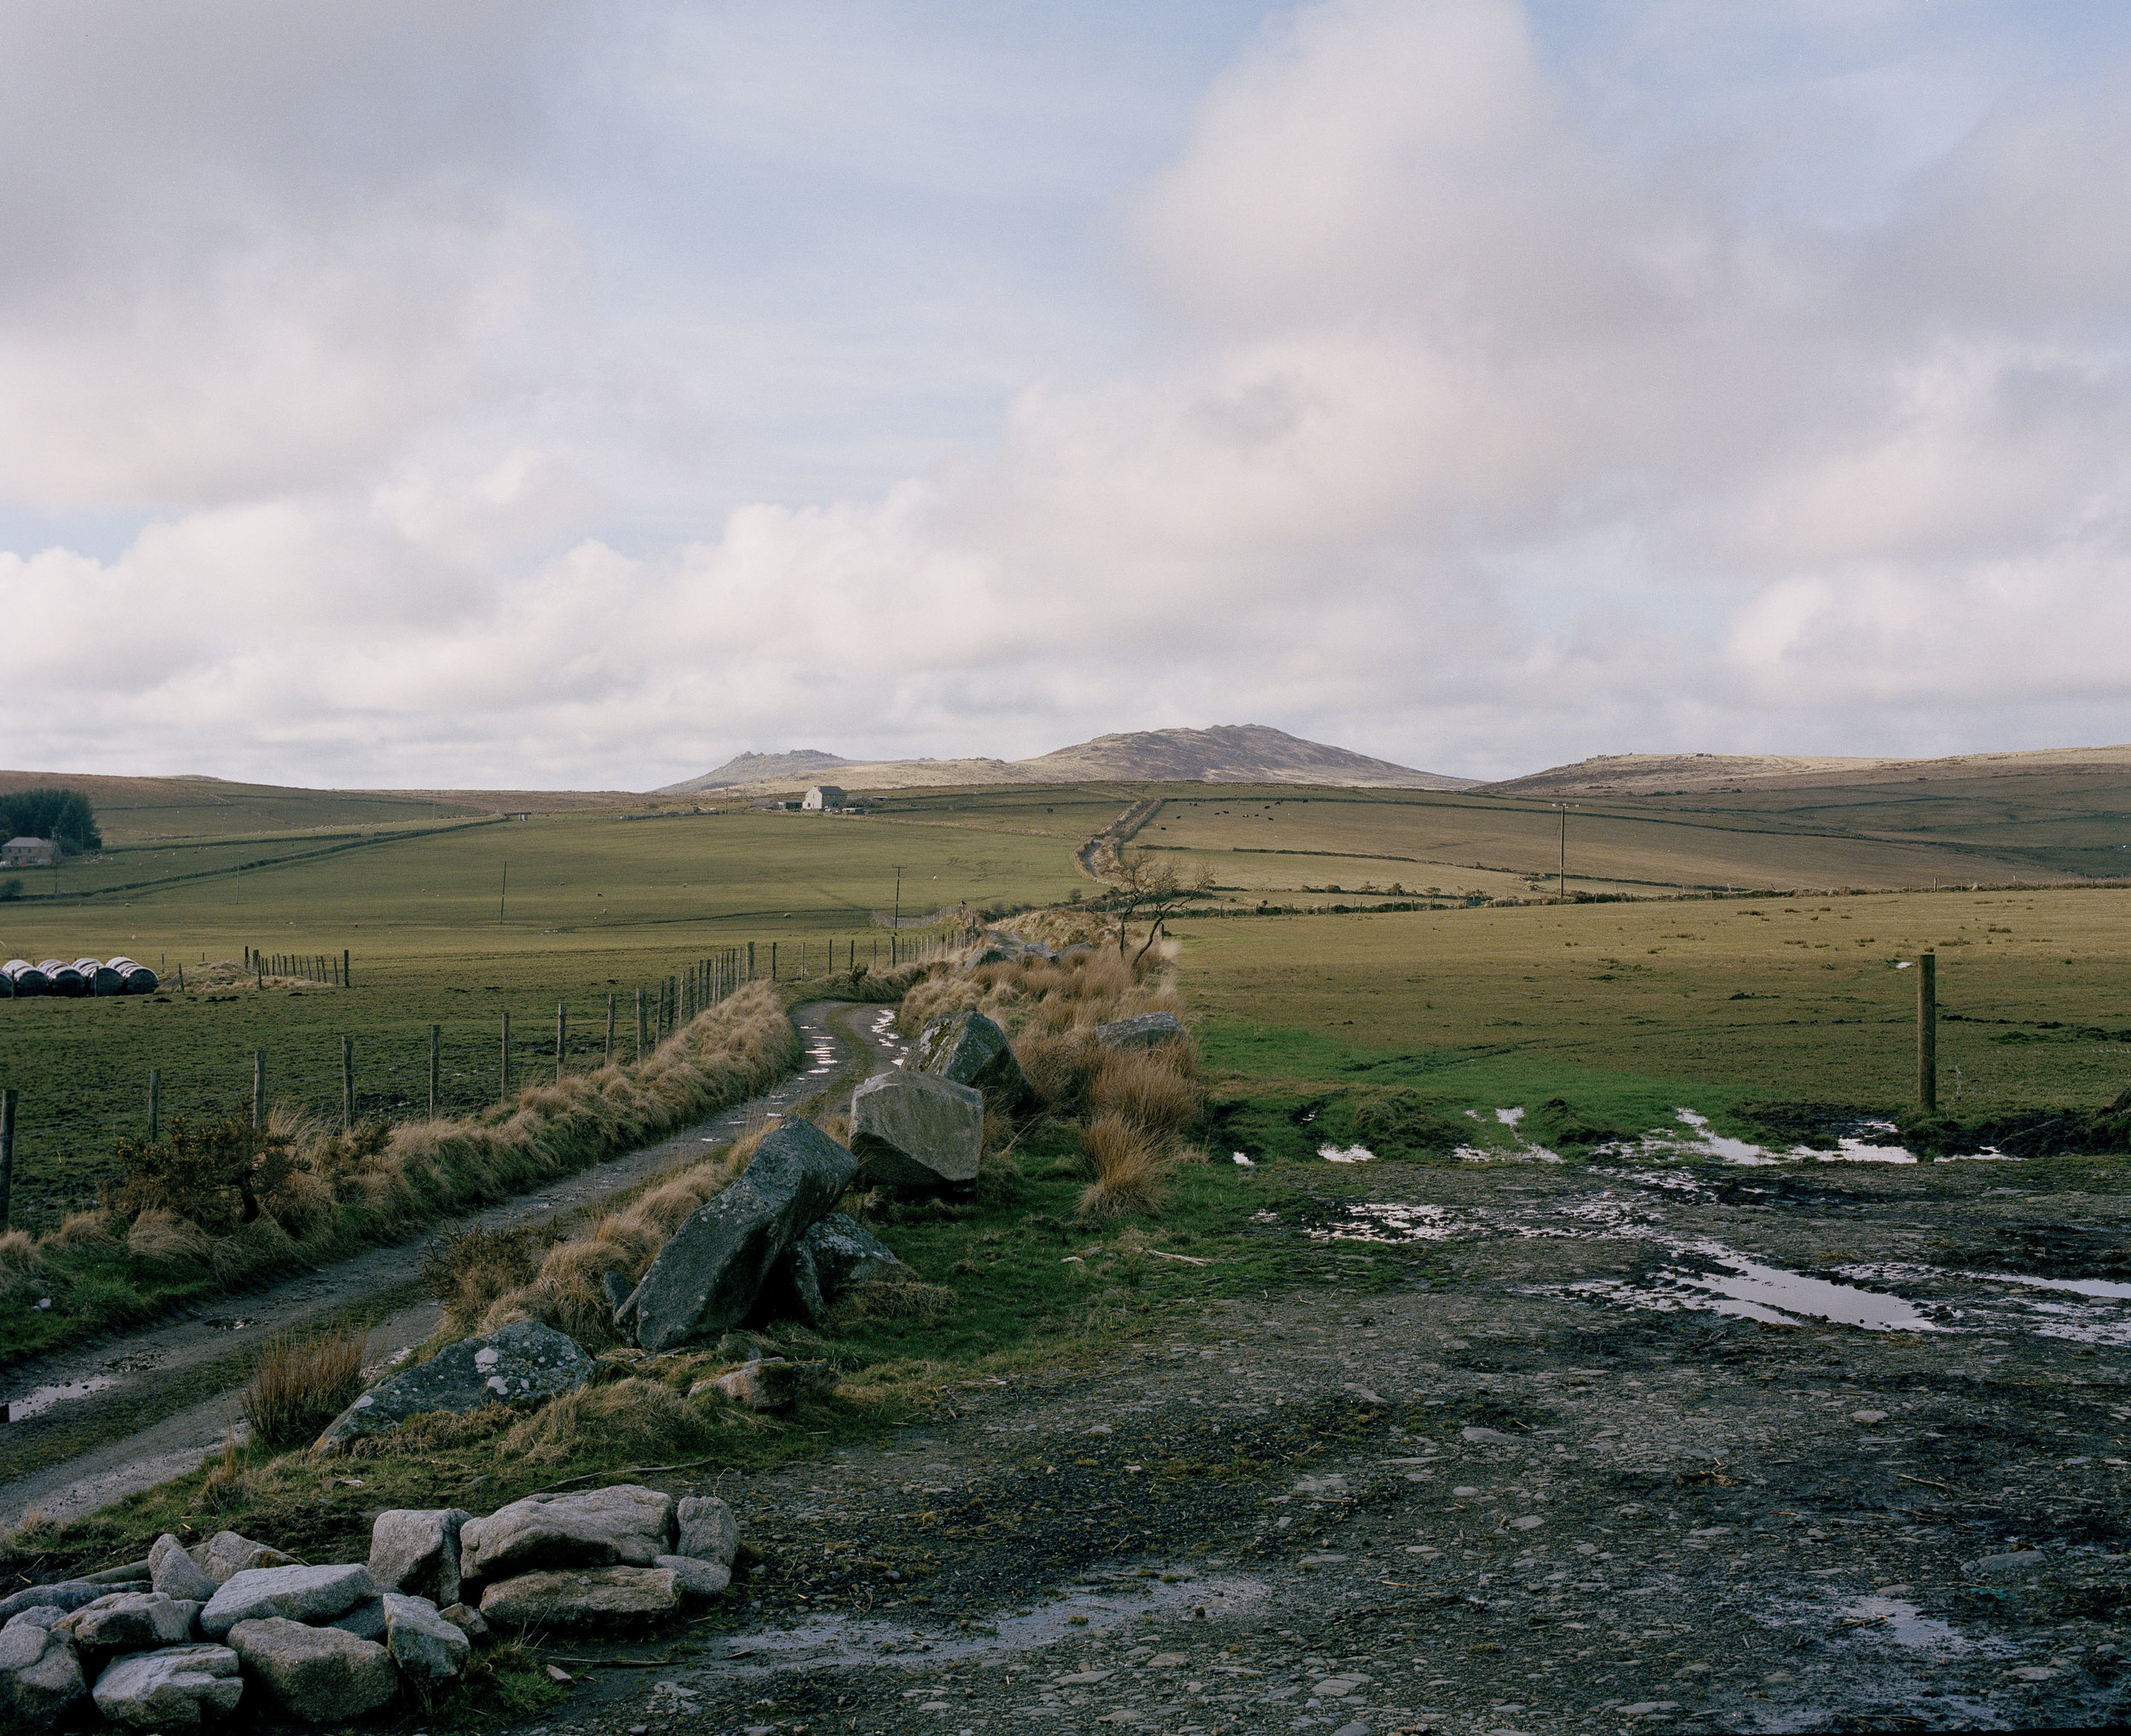 Bodmin Moor. This stretch of land is where Dan Wilson and his family have farmed for generations. They have all used western riding as a way of working with the cattle.